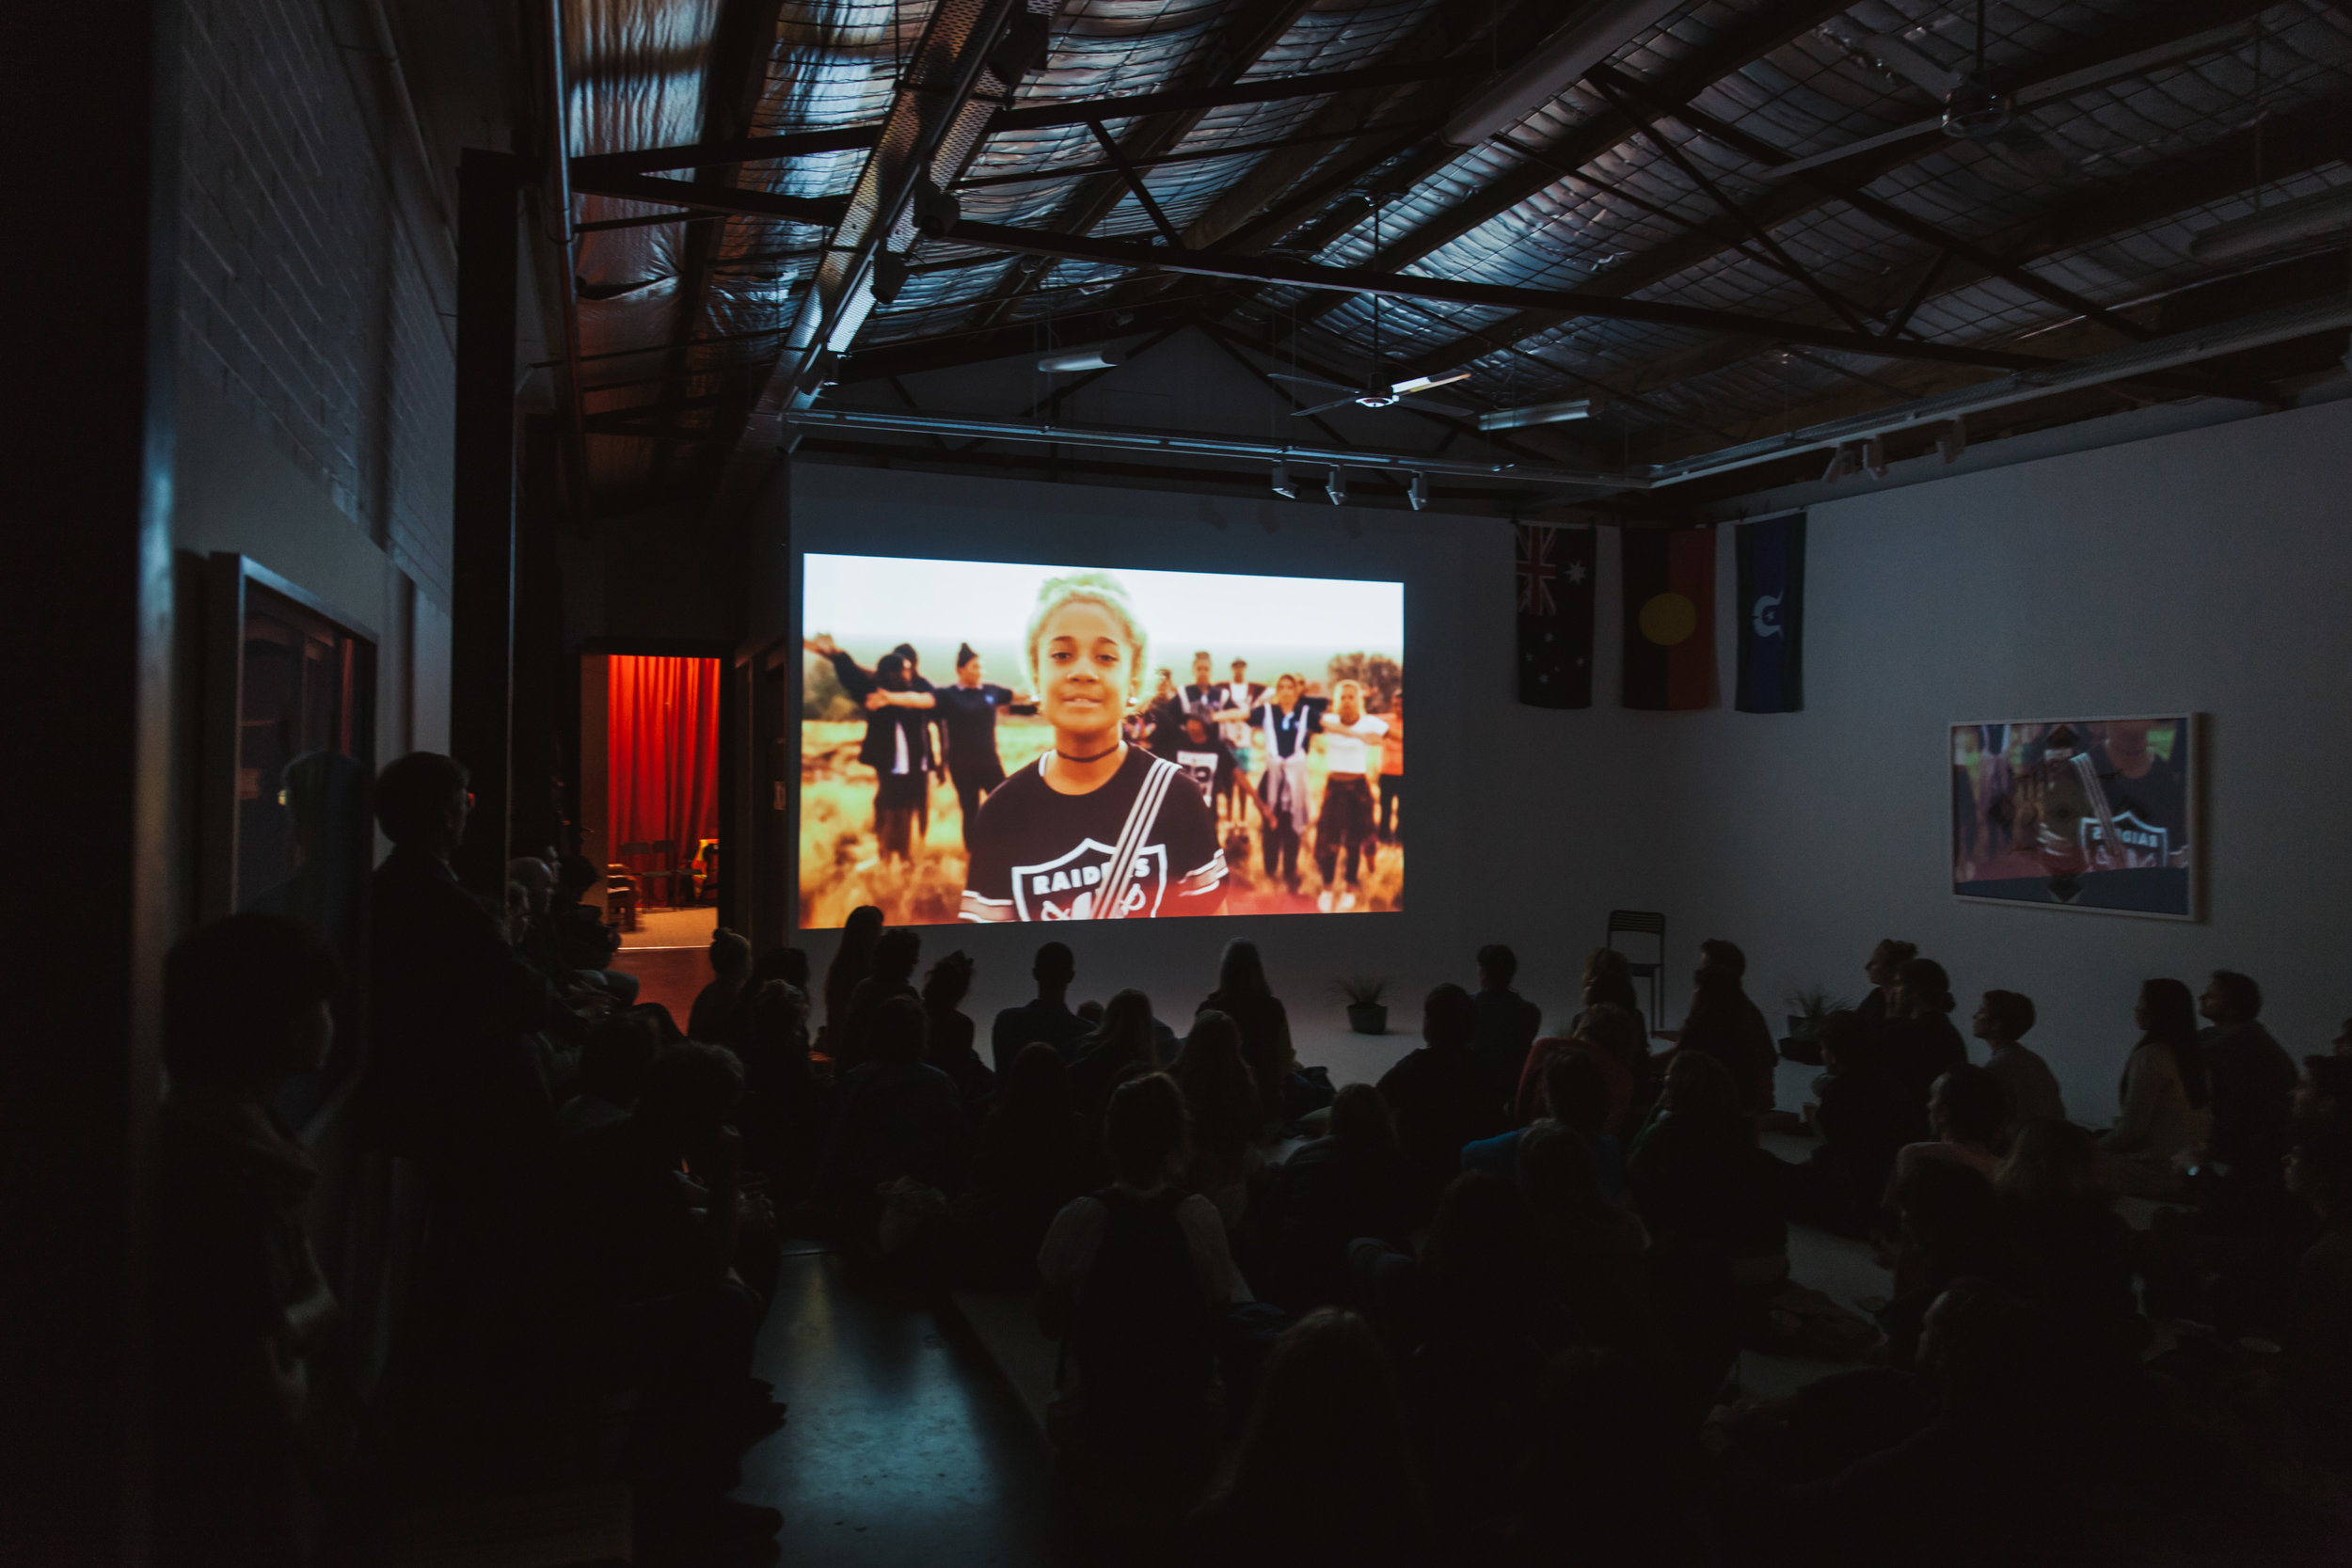 Thanks Desert Pea Media for showcasing your Music Video's at our YARN Narrm Melbourne Community Event